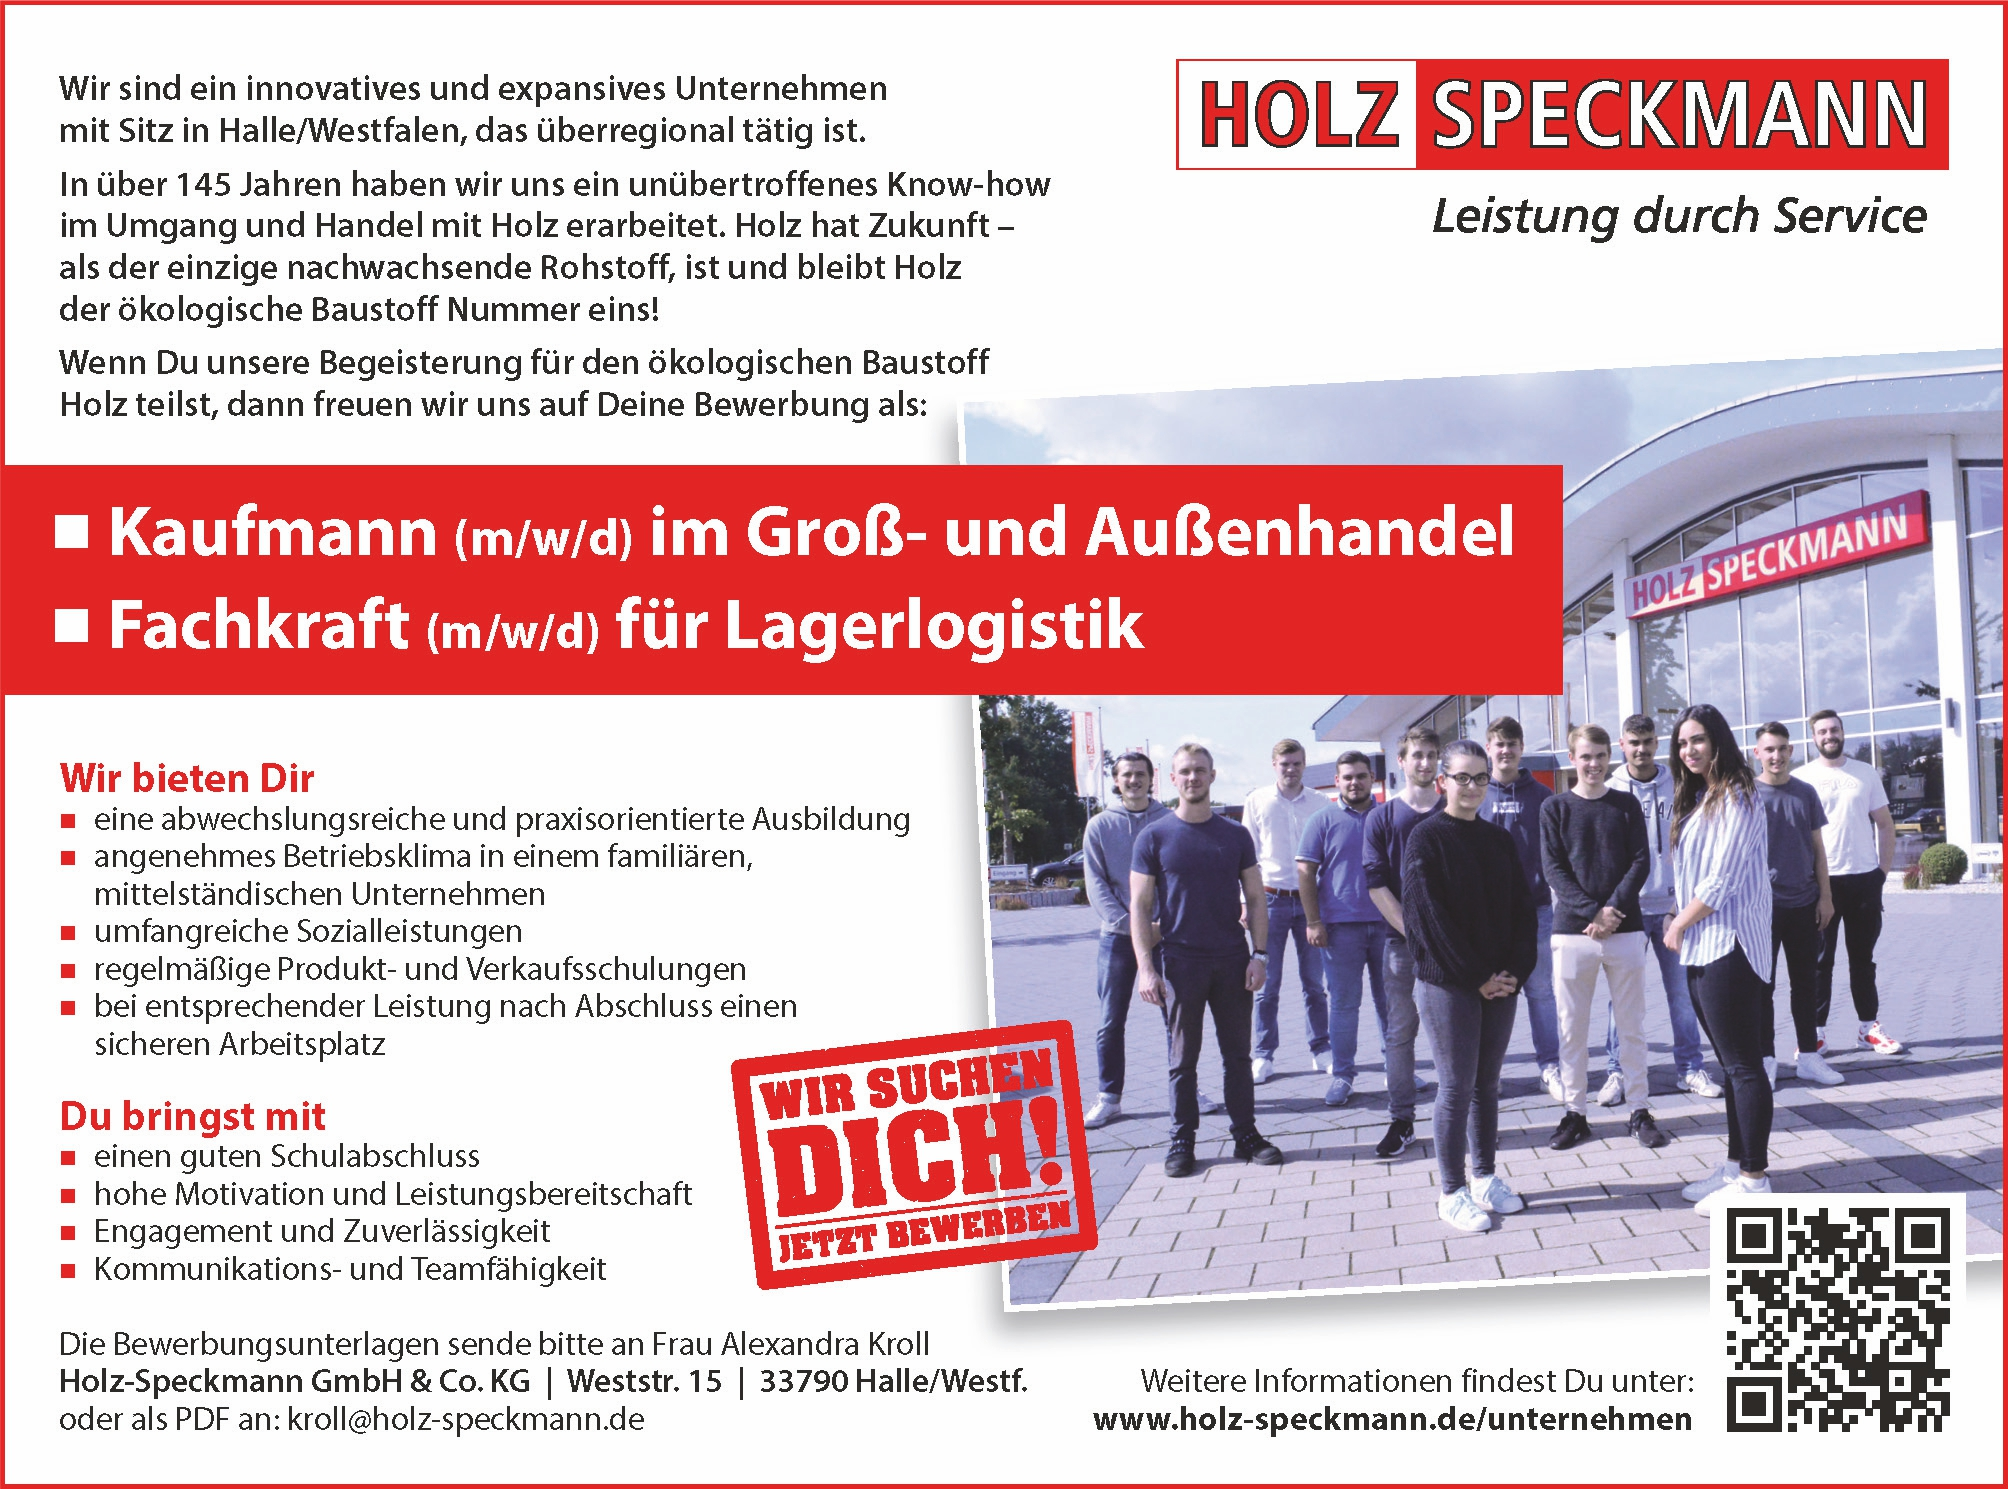 Holz-Speckmann GmbH & Co. KG